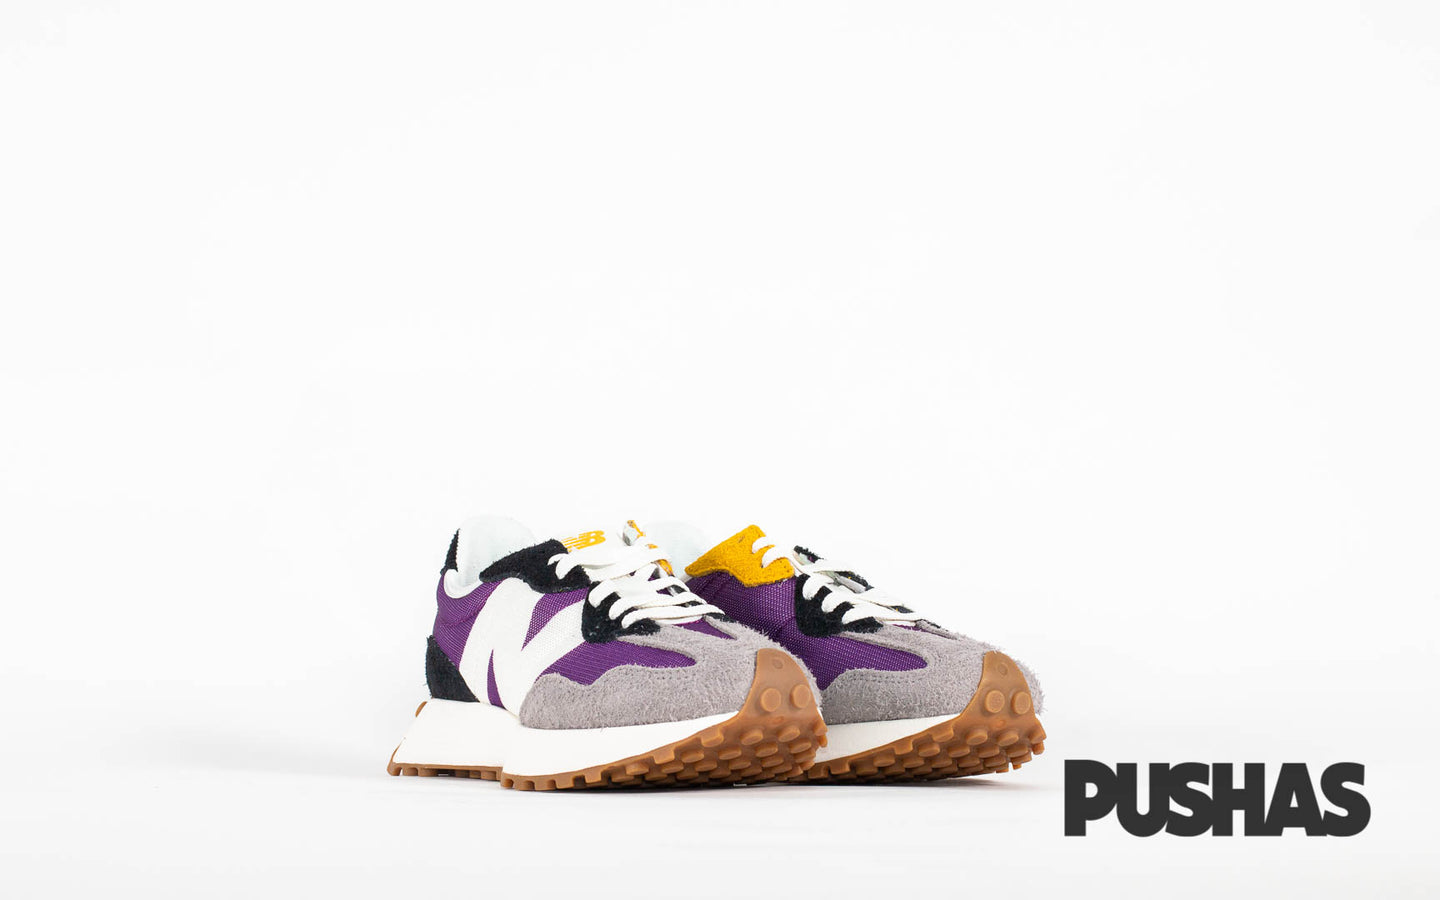 pushas-new-balance-327-purple-black